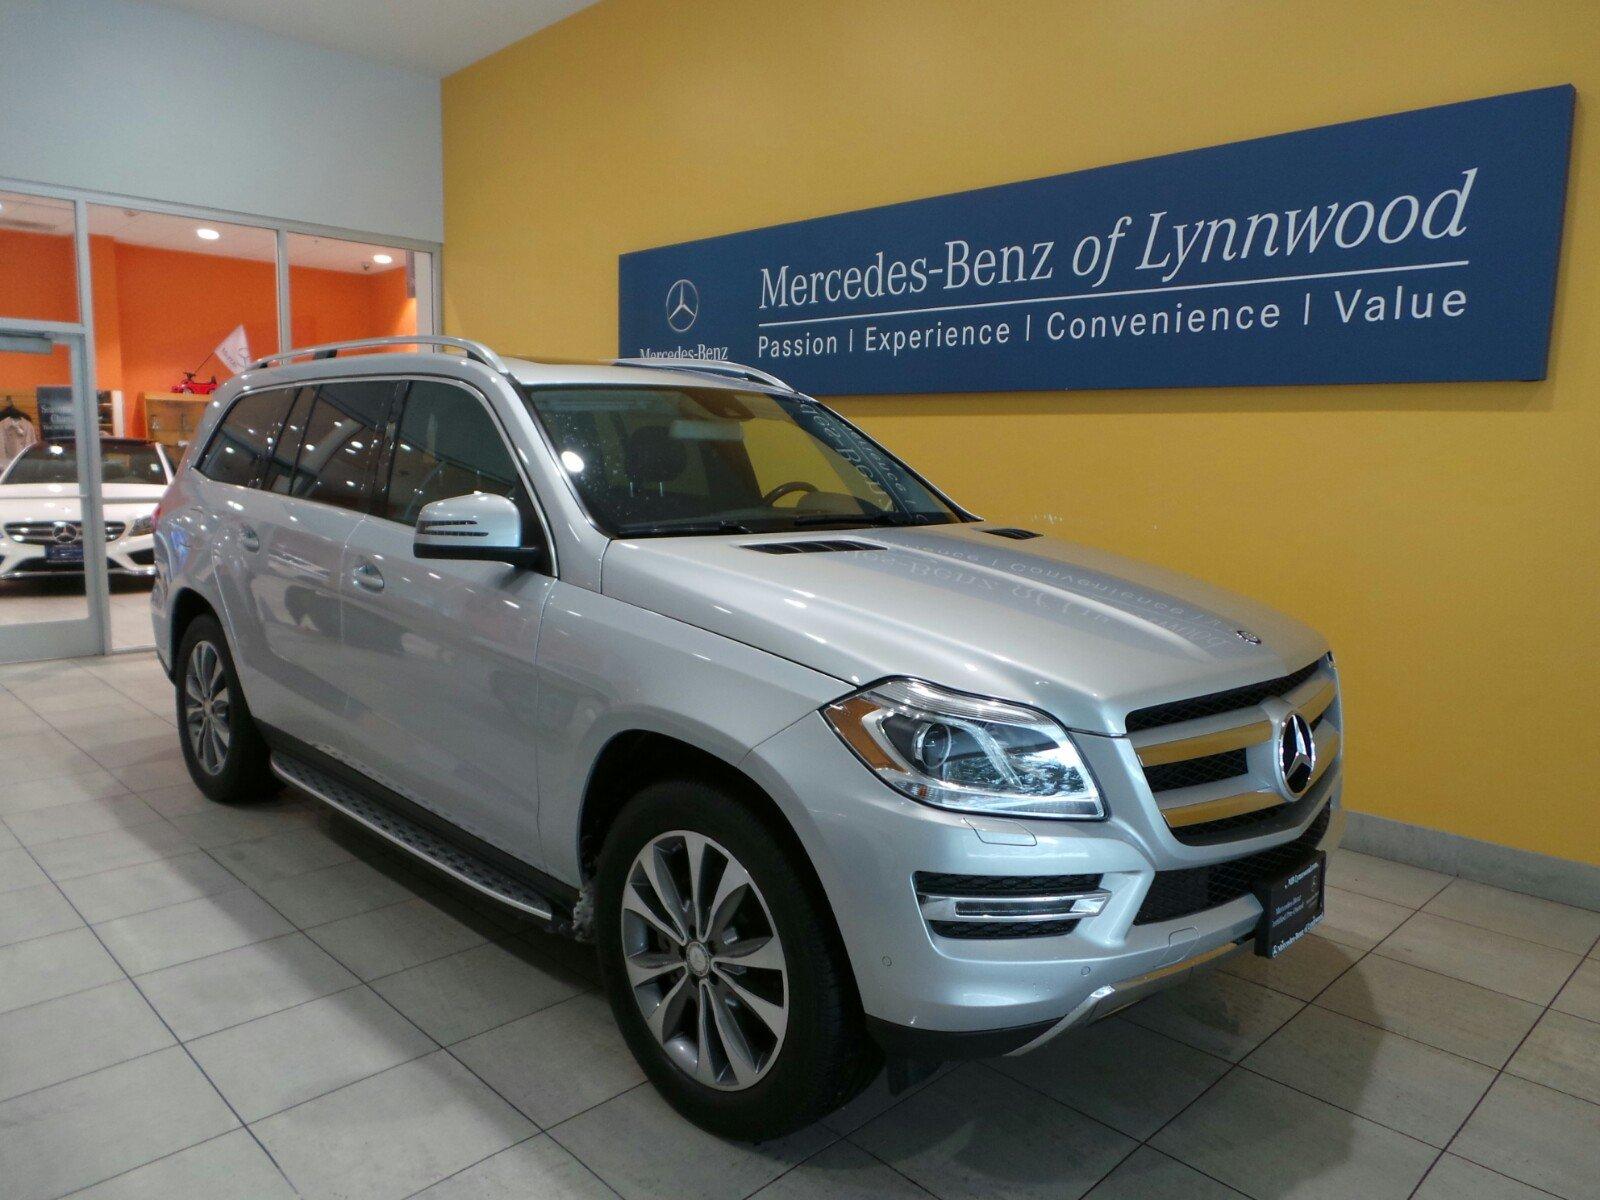 Certified pre owned 2015 mercedes benz gl gl 450 suv in for Certified pre owned mercedes benz